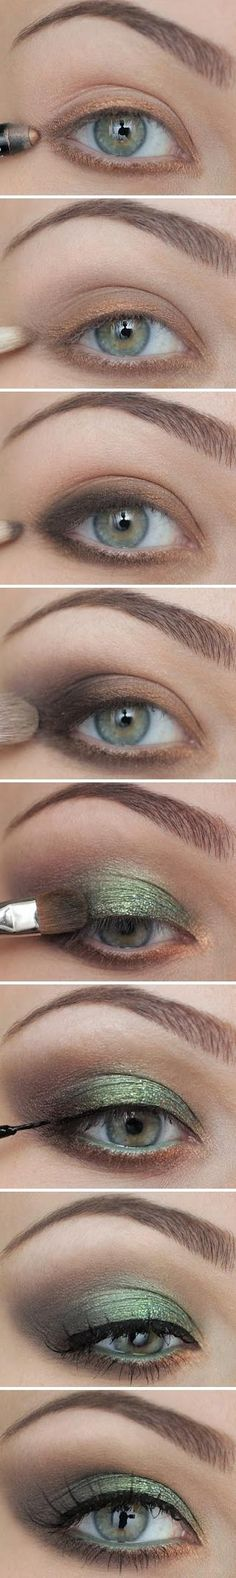 Green and bronze smoky eye